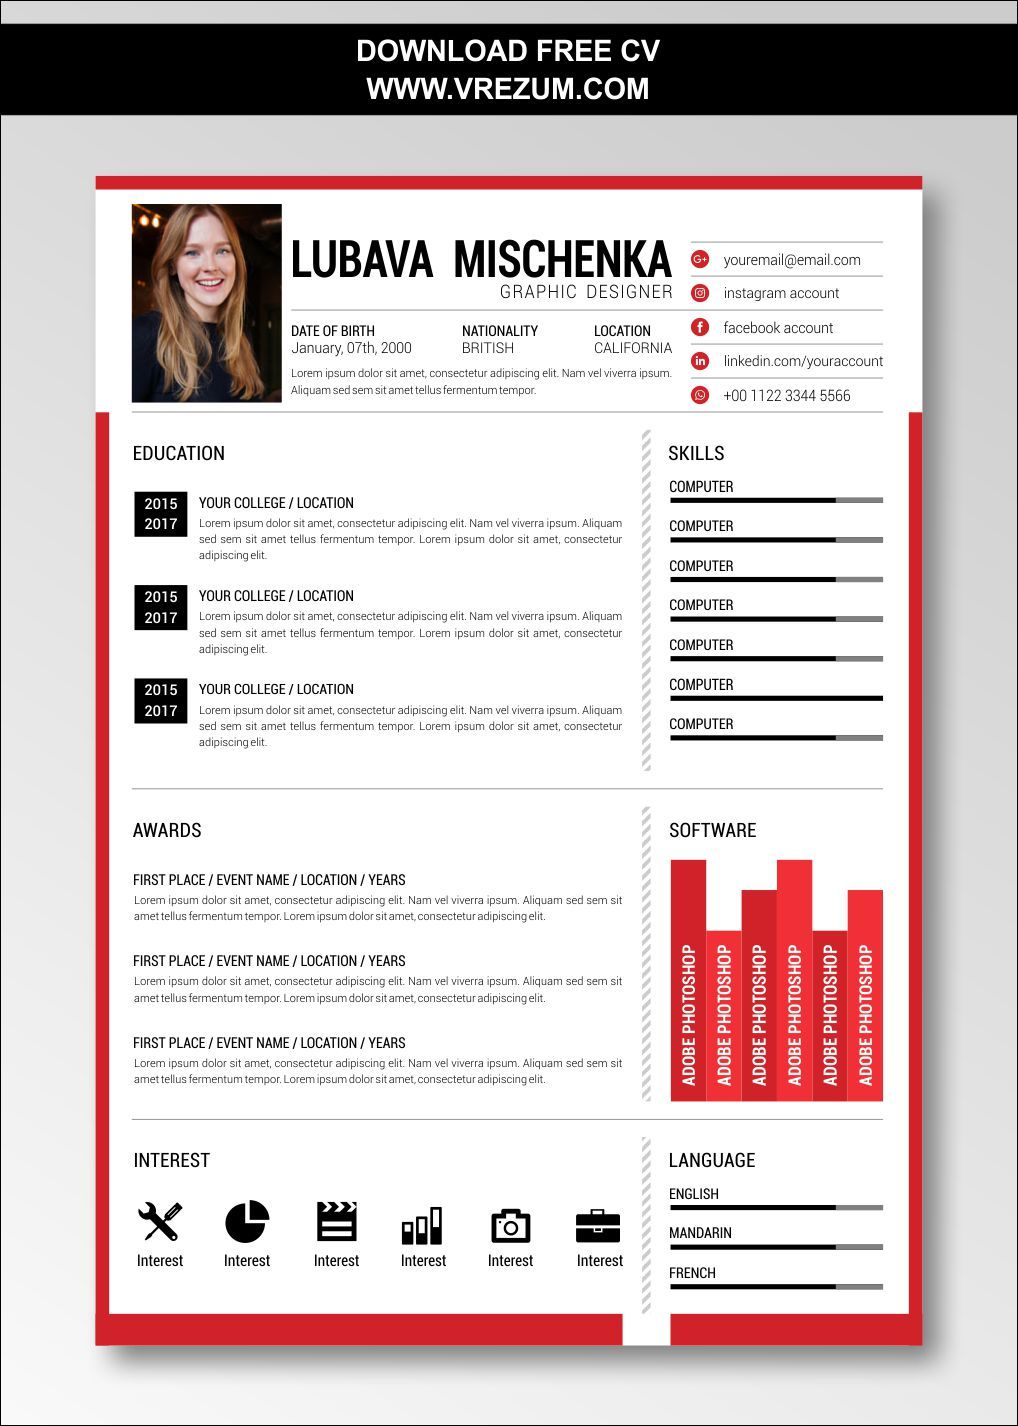 (EDITABLE) FREE CV Templates For Graduate Application in